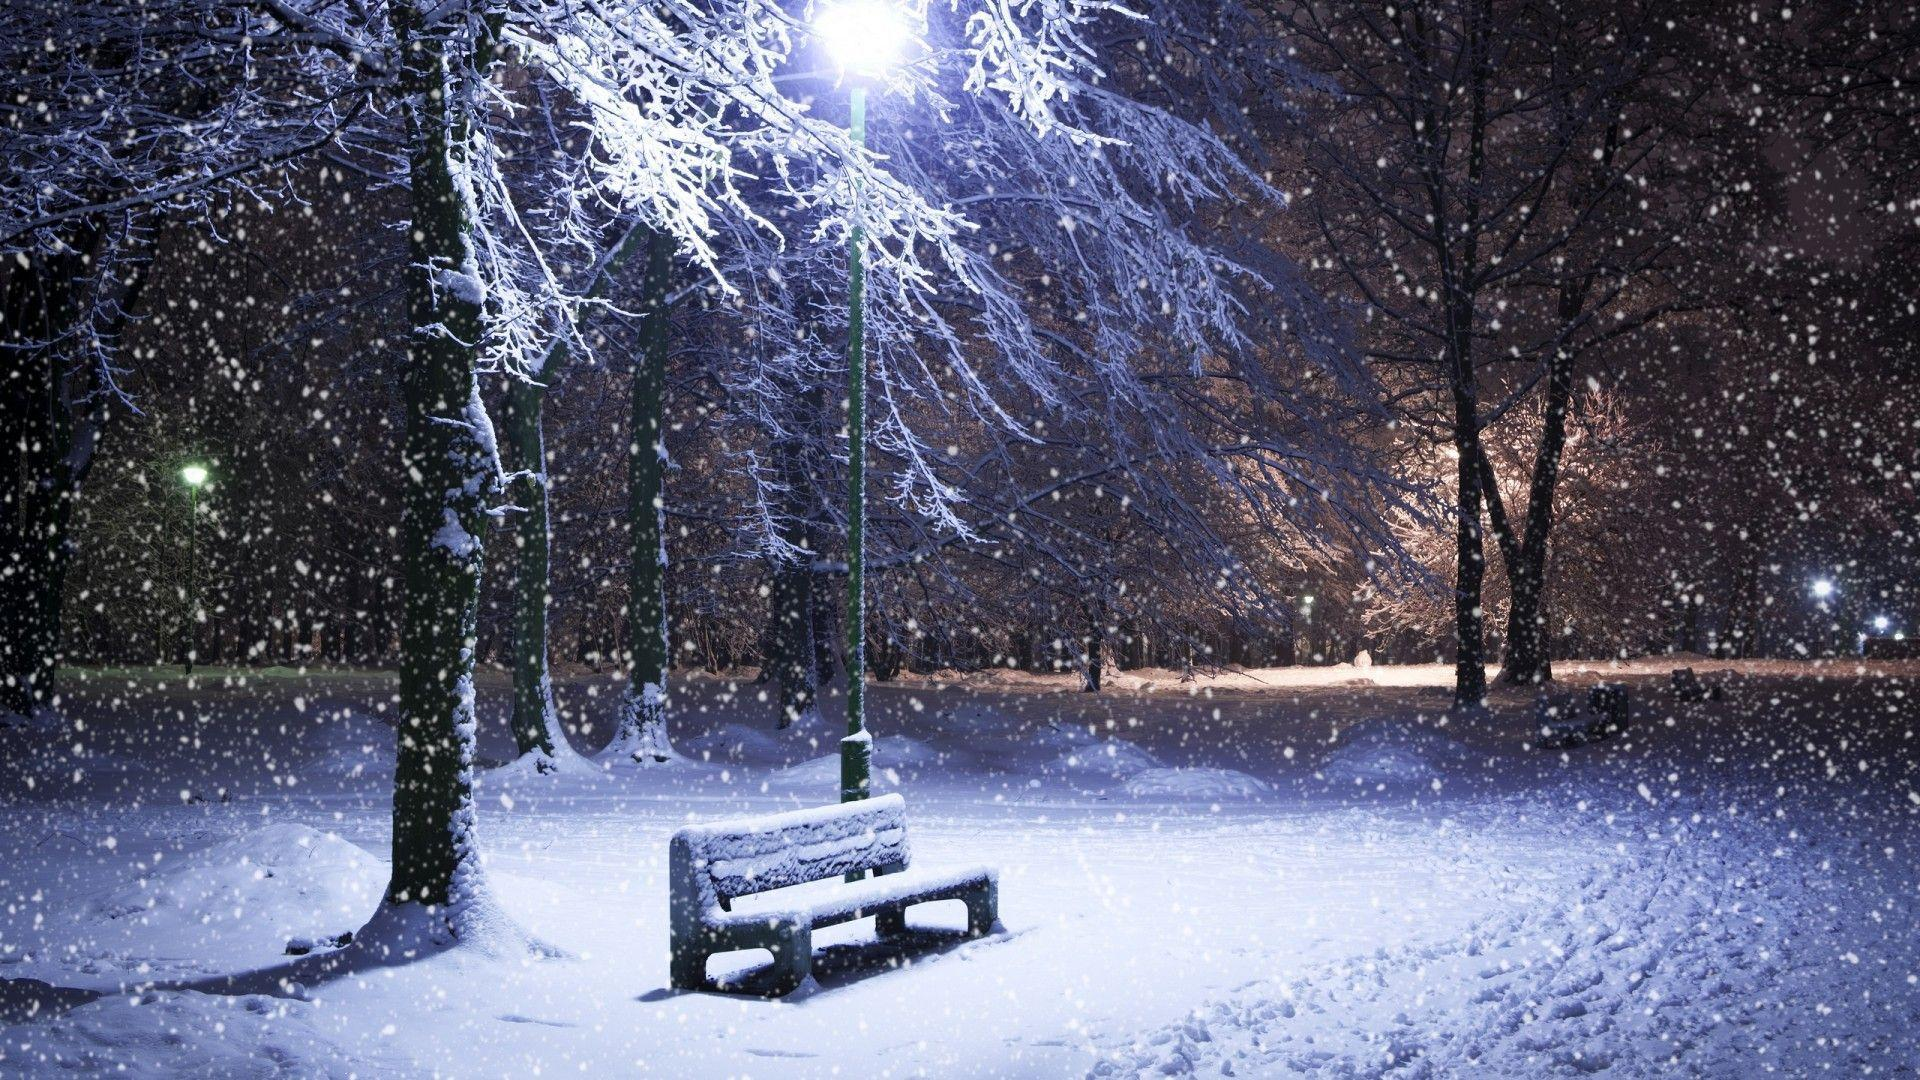 Snow Nature Wallpapers Top Free Snow Nature Backgrounds